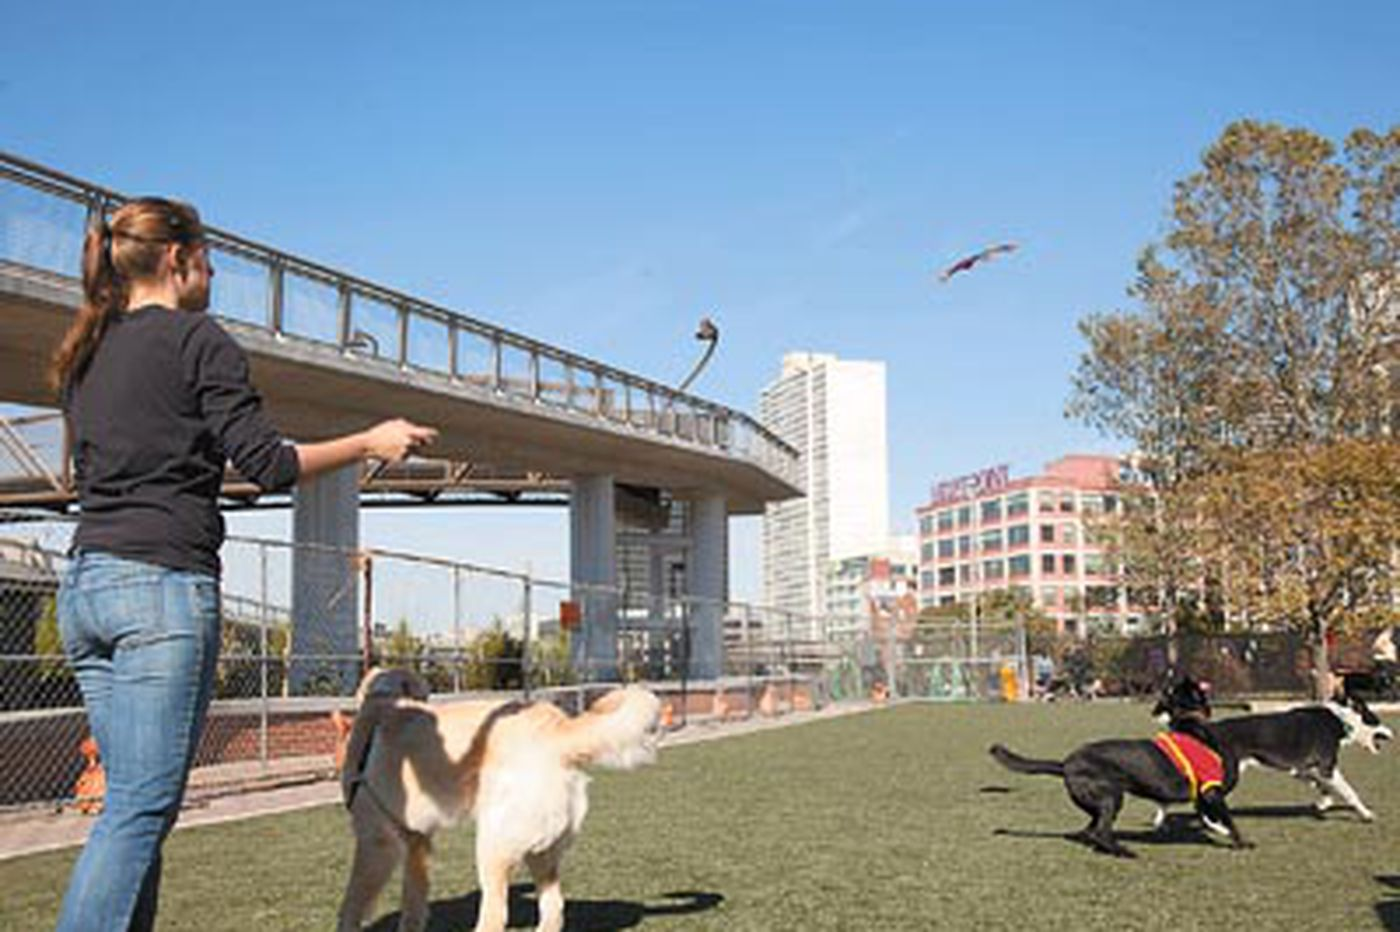 Canine oasis in the city